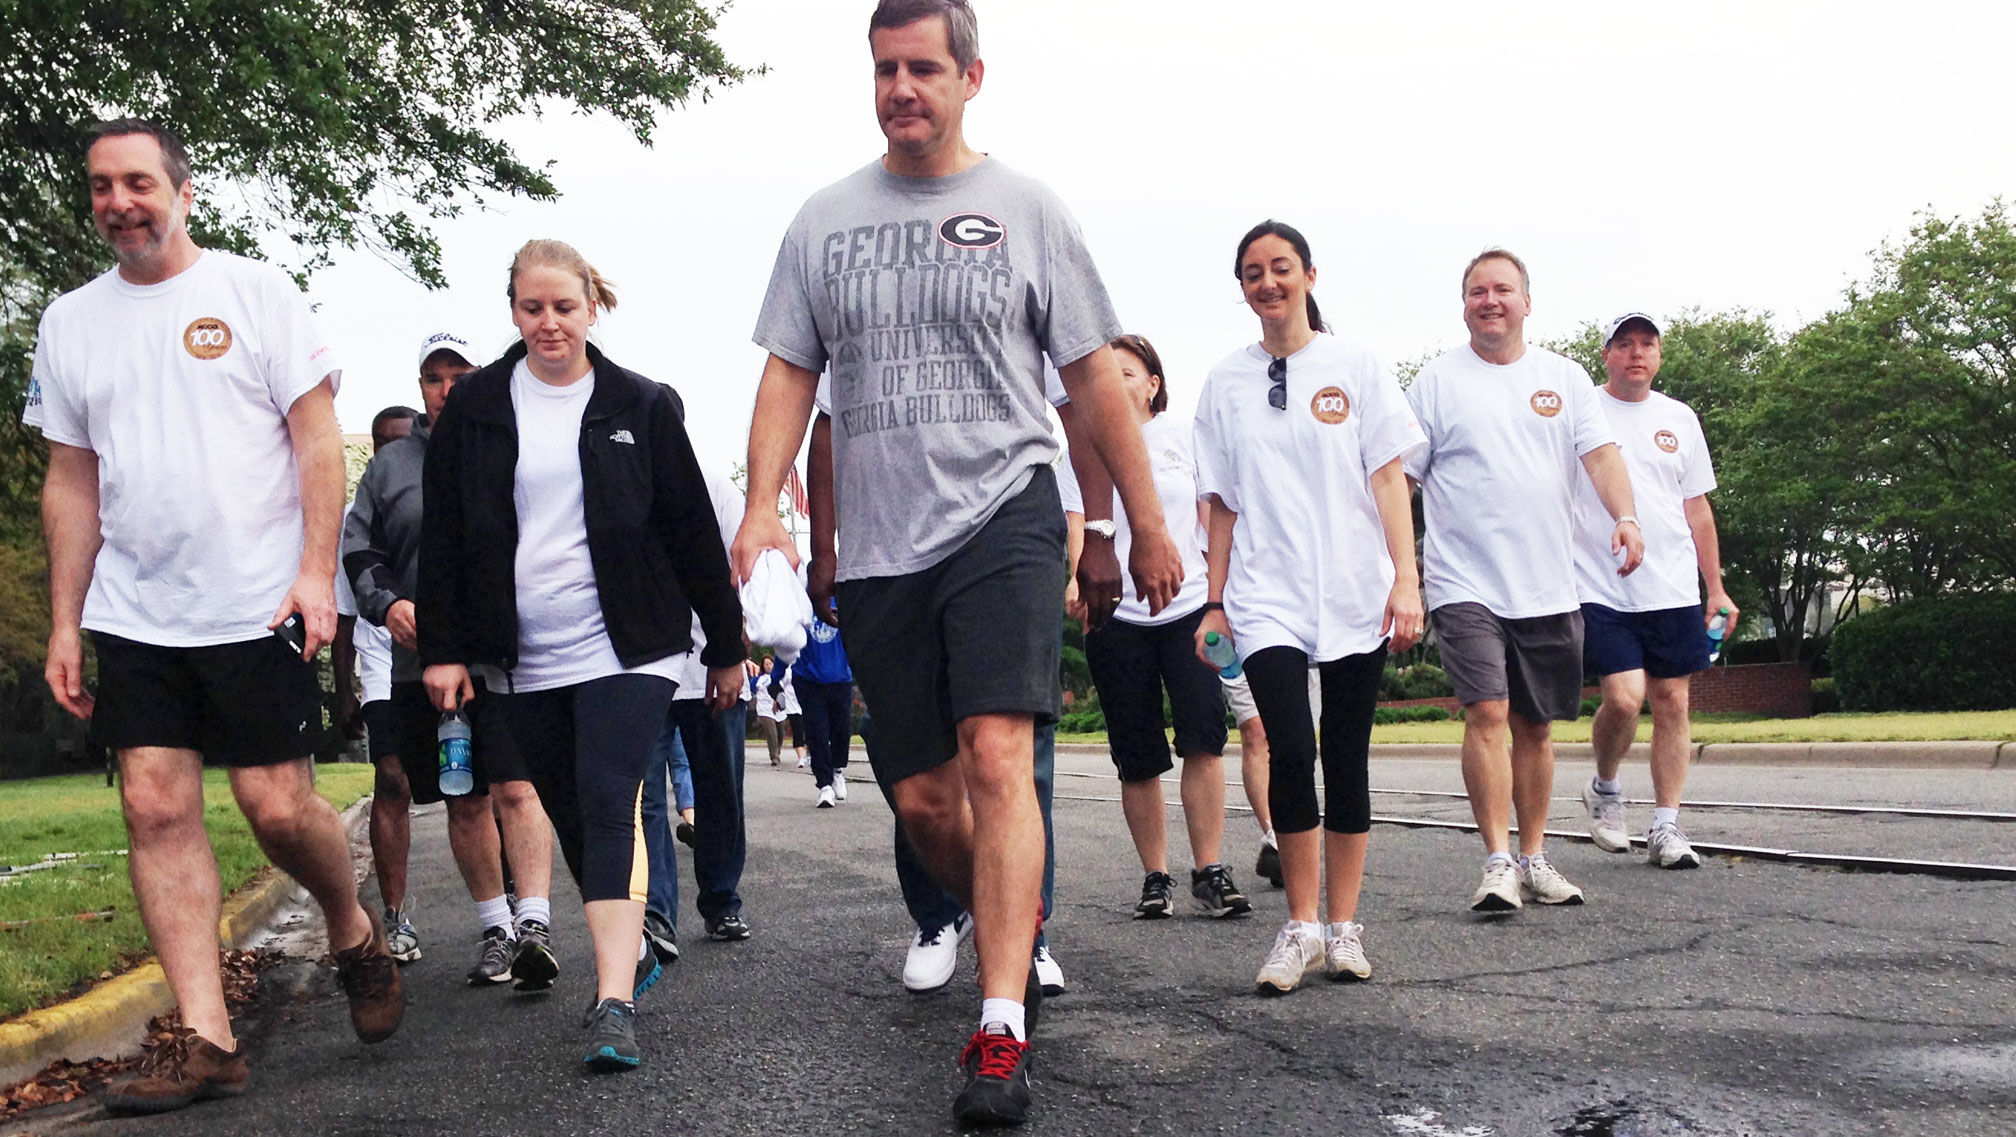 Walk Georgia fighting obesity problem one step at a time